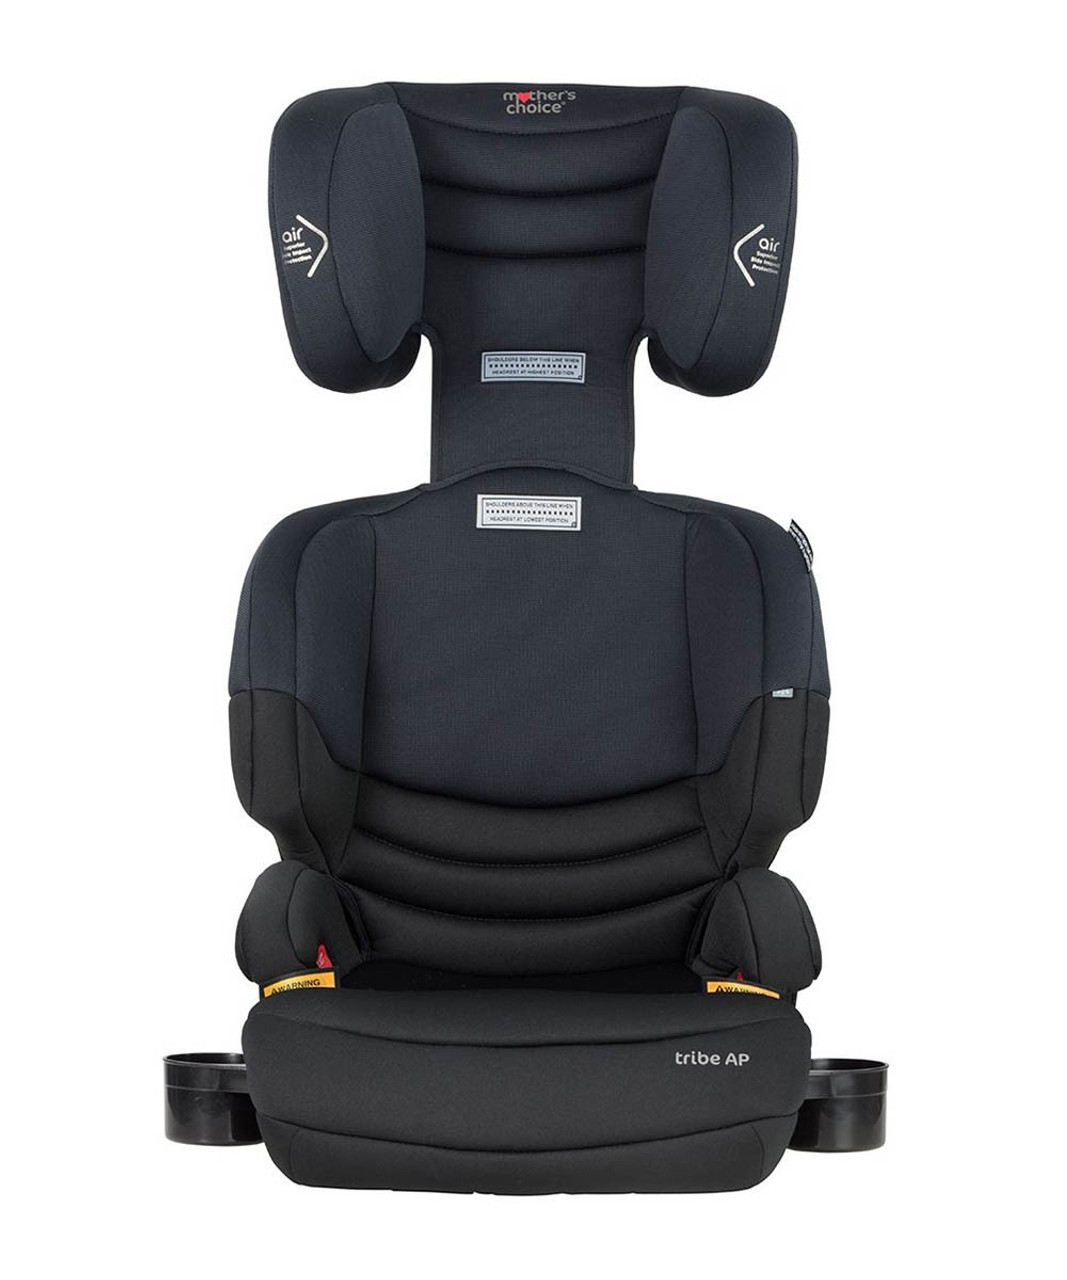 The Mother's Choice Tribe AP booster seat is a narrow, yet comfortable seat that allows for up to 3 seats across the back in most cars.